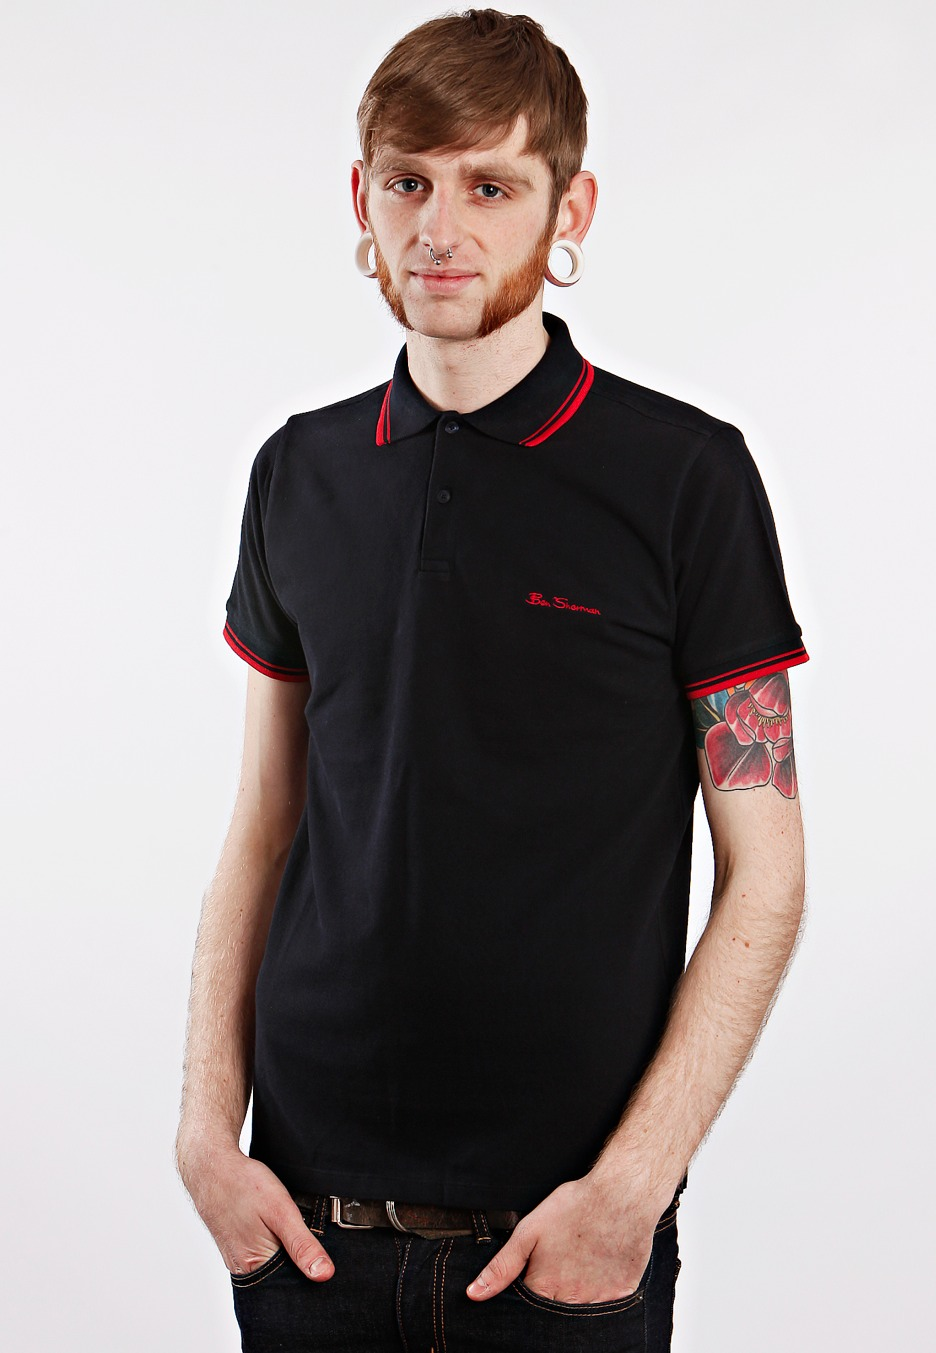 ben sherman romford tipped collar classic navy red red polo streetwear shop impericon. Black Bedroom Furniture Sets. Home Design Ideas